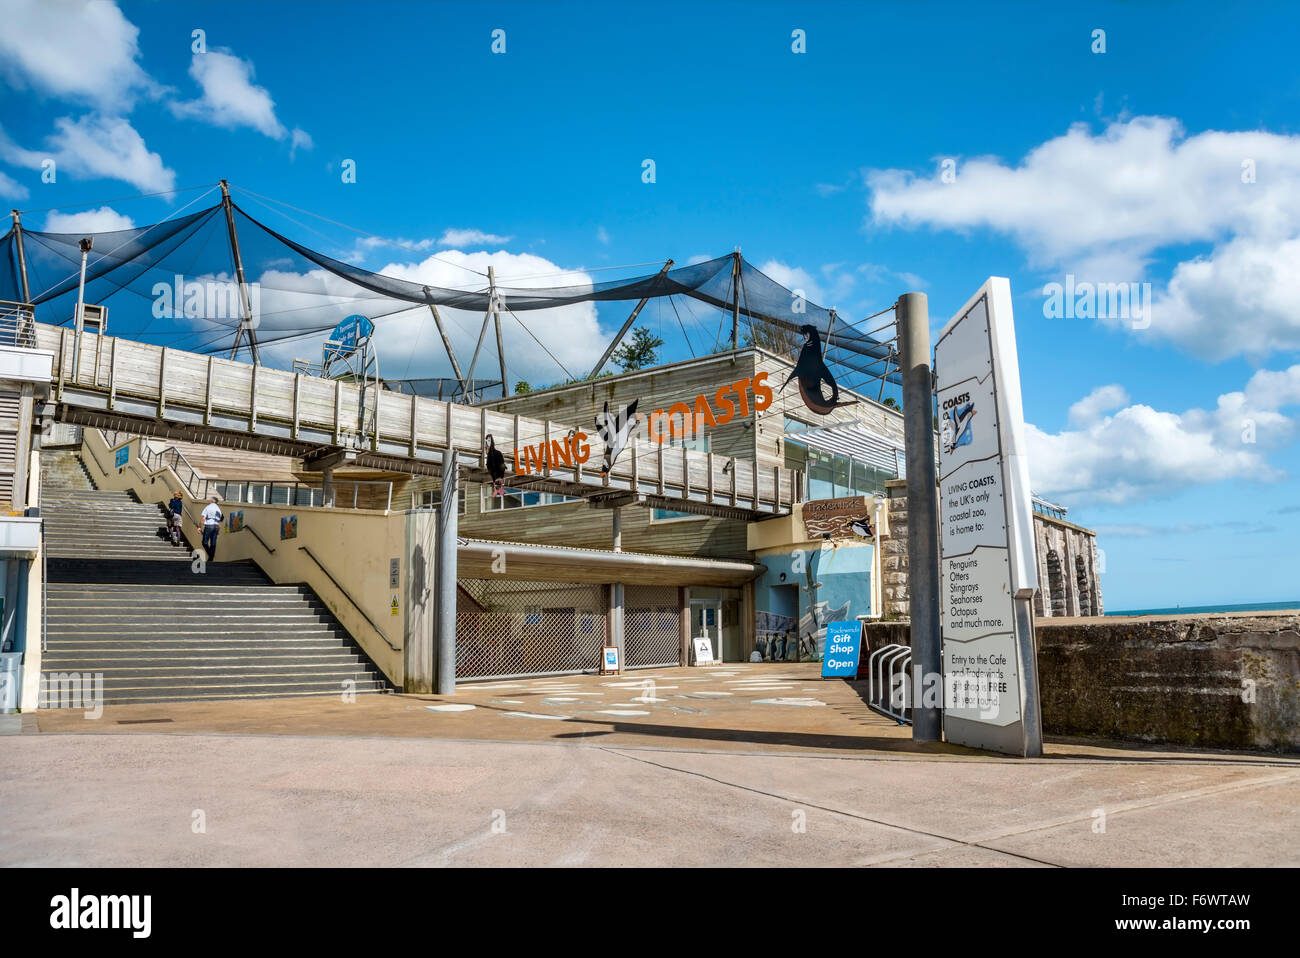 Living Coasts aquarium and Aviary, Torquay, Torbay, England, UK | Living Coasts Aquarium in Torquay, Torbay, England, - Stock Image